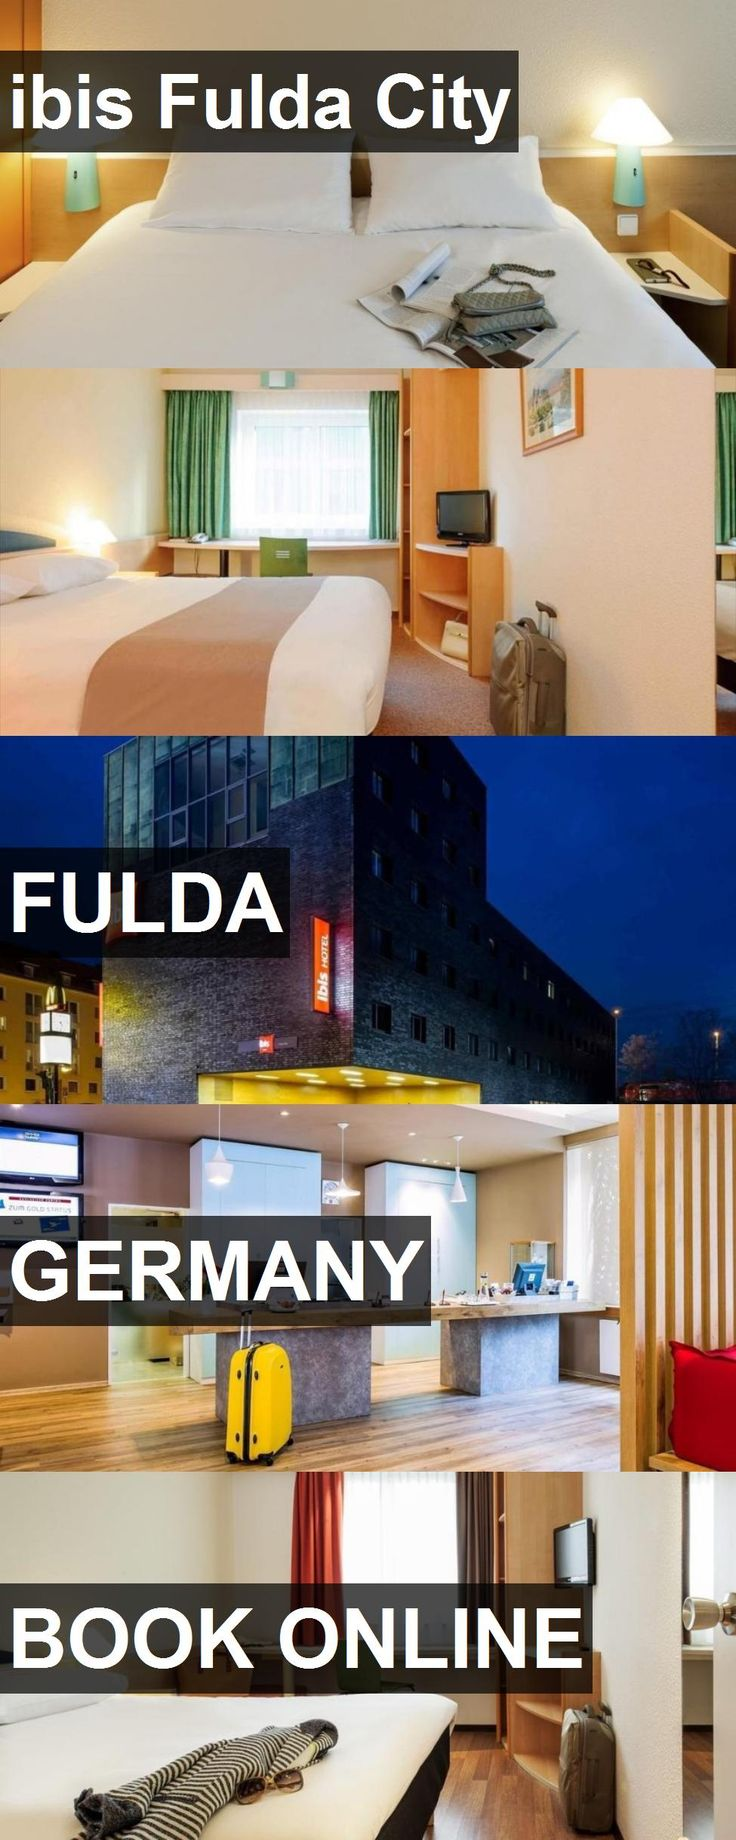 Hotel ibis Fulda City in Fulda, Germany. For more information, photos, reviews and best prices please follow the link. #Germany #Fulda #travel #vacation #hotel